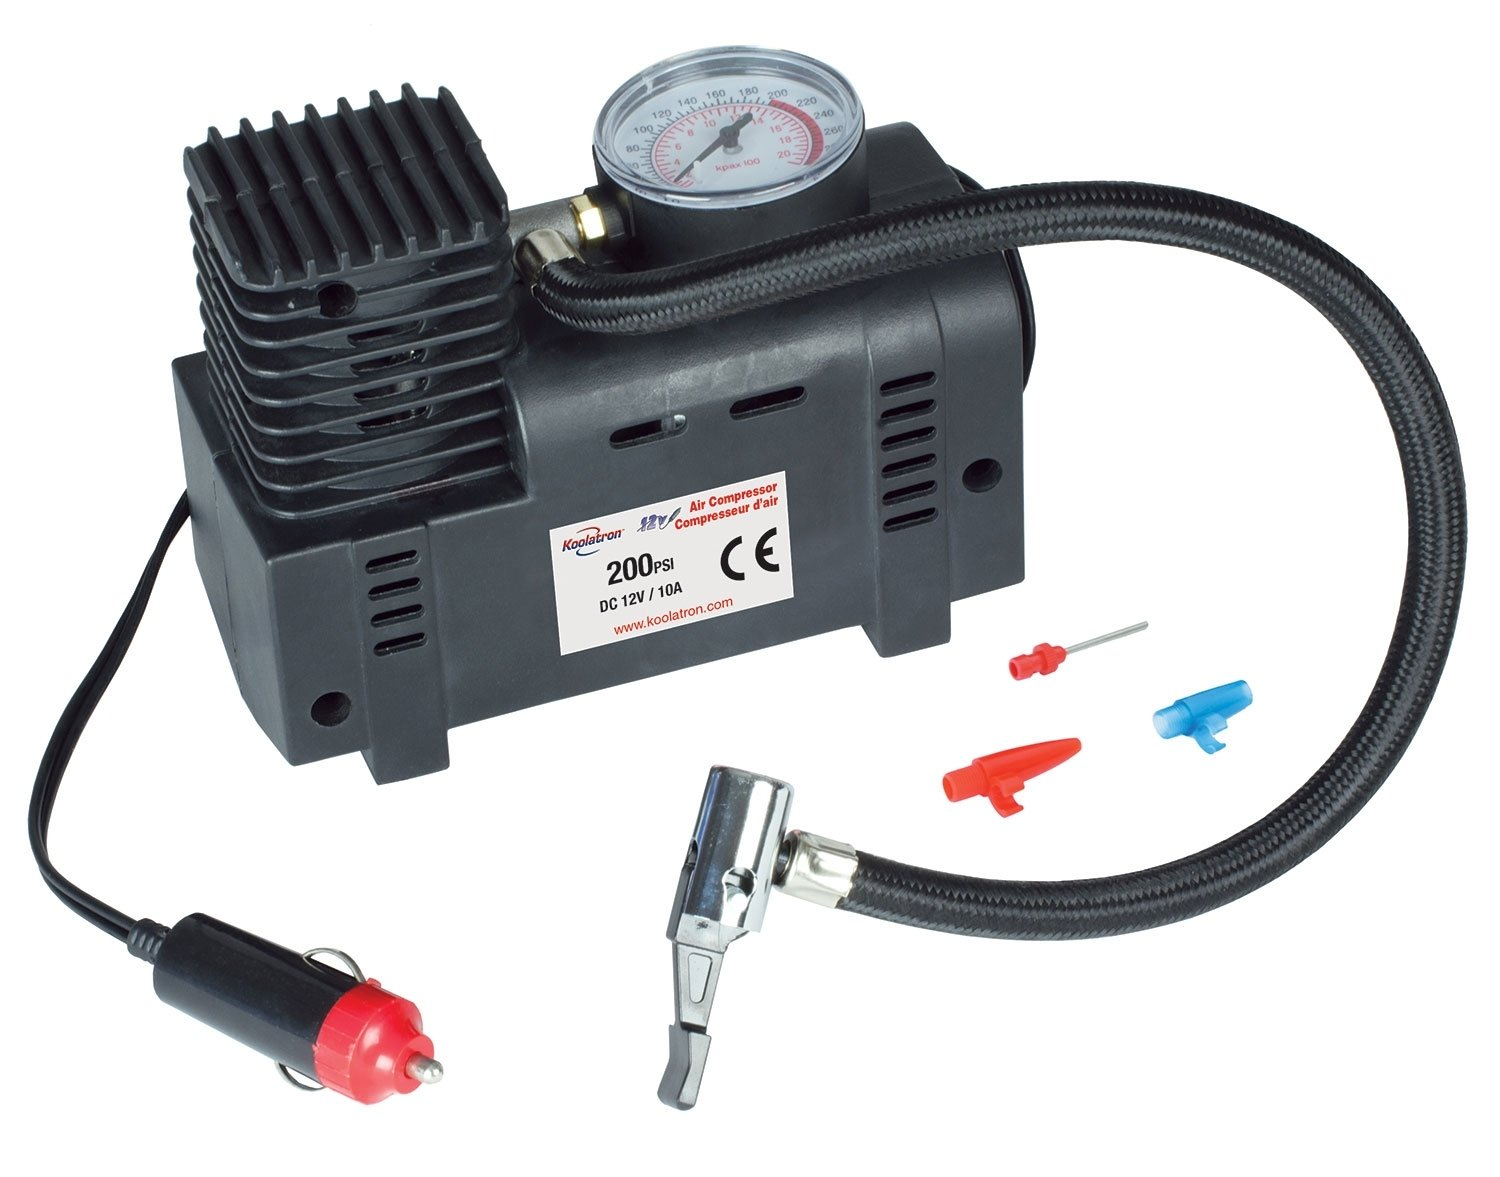 The Best 12 volt Air Compressors Reviewed – Detailed Buyers Guide